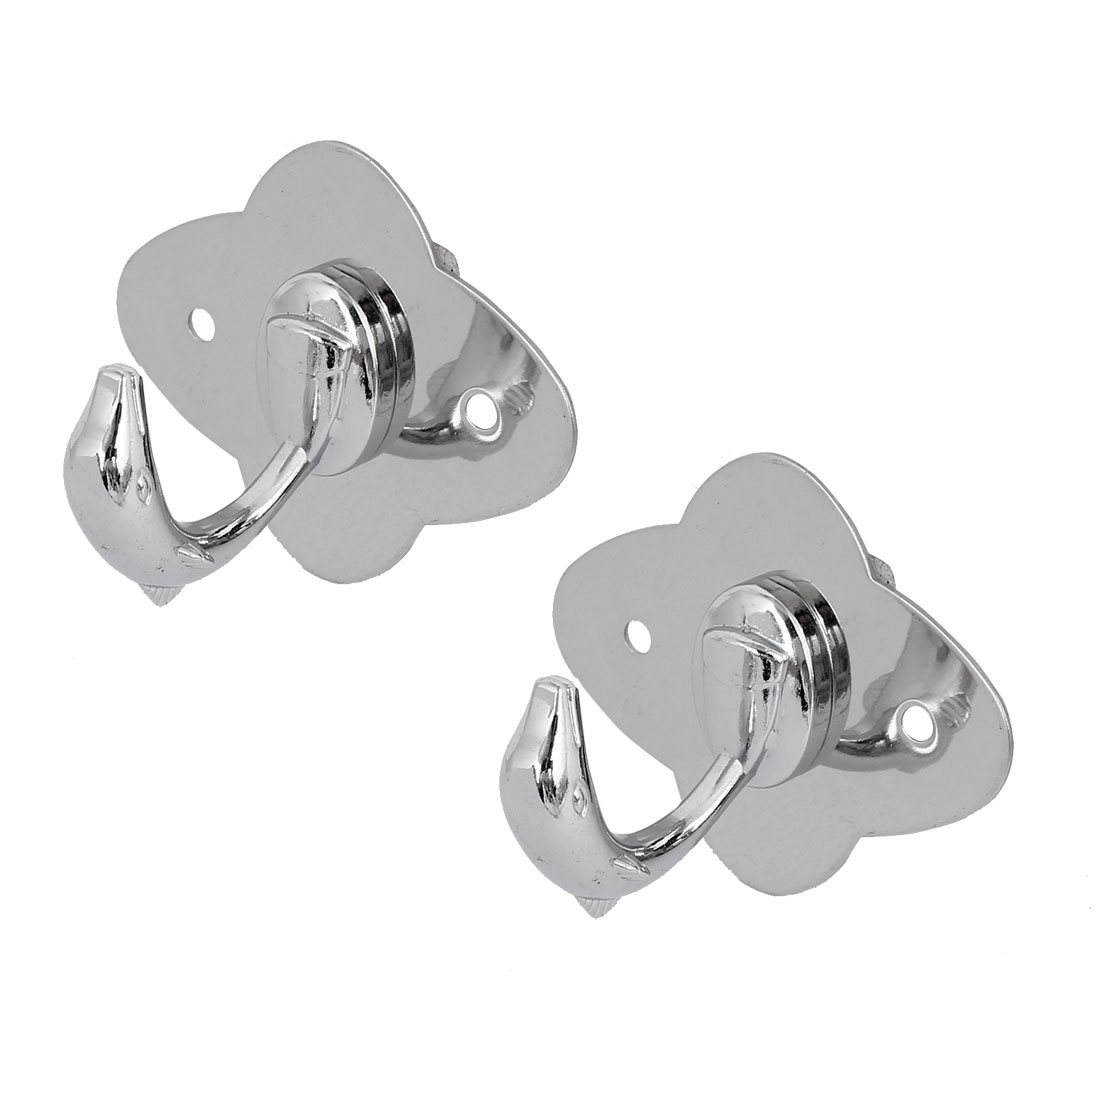 Bathroom Clothes Coat Single Hook Dolphin Shape Stainless Steel Wall Hanger 2pcs